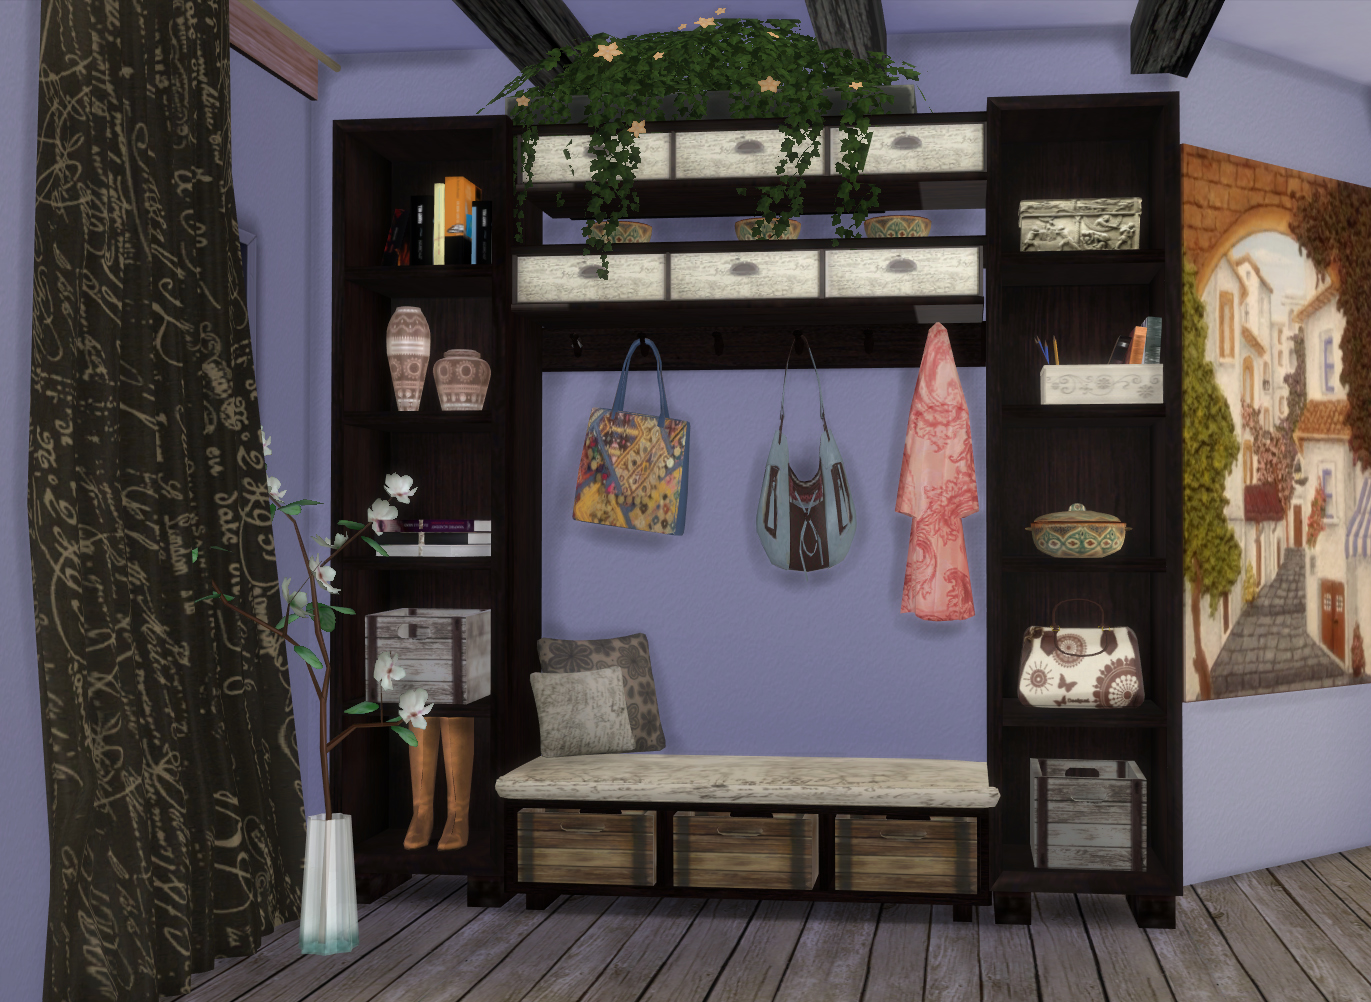 sims 4 cc's - the best: ibiza hall set by pqsim4, Badezimmer ideen